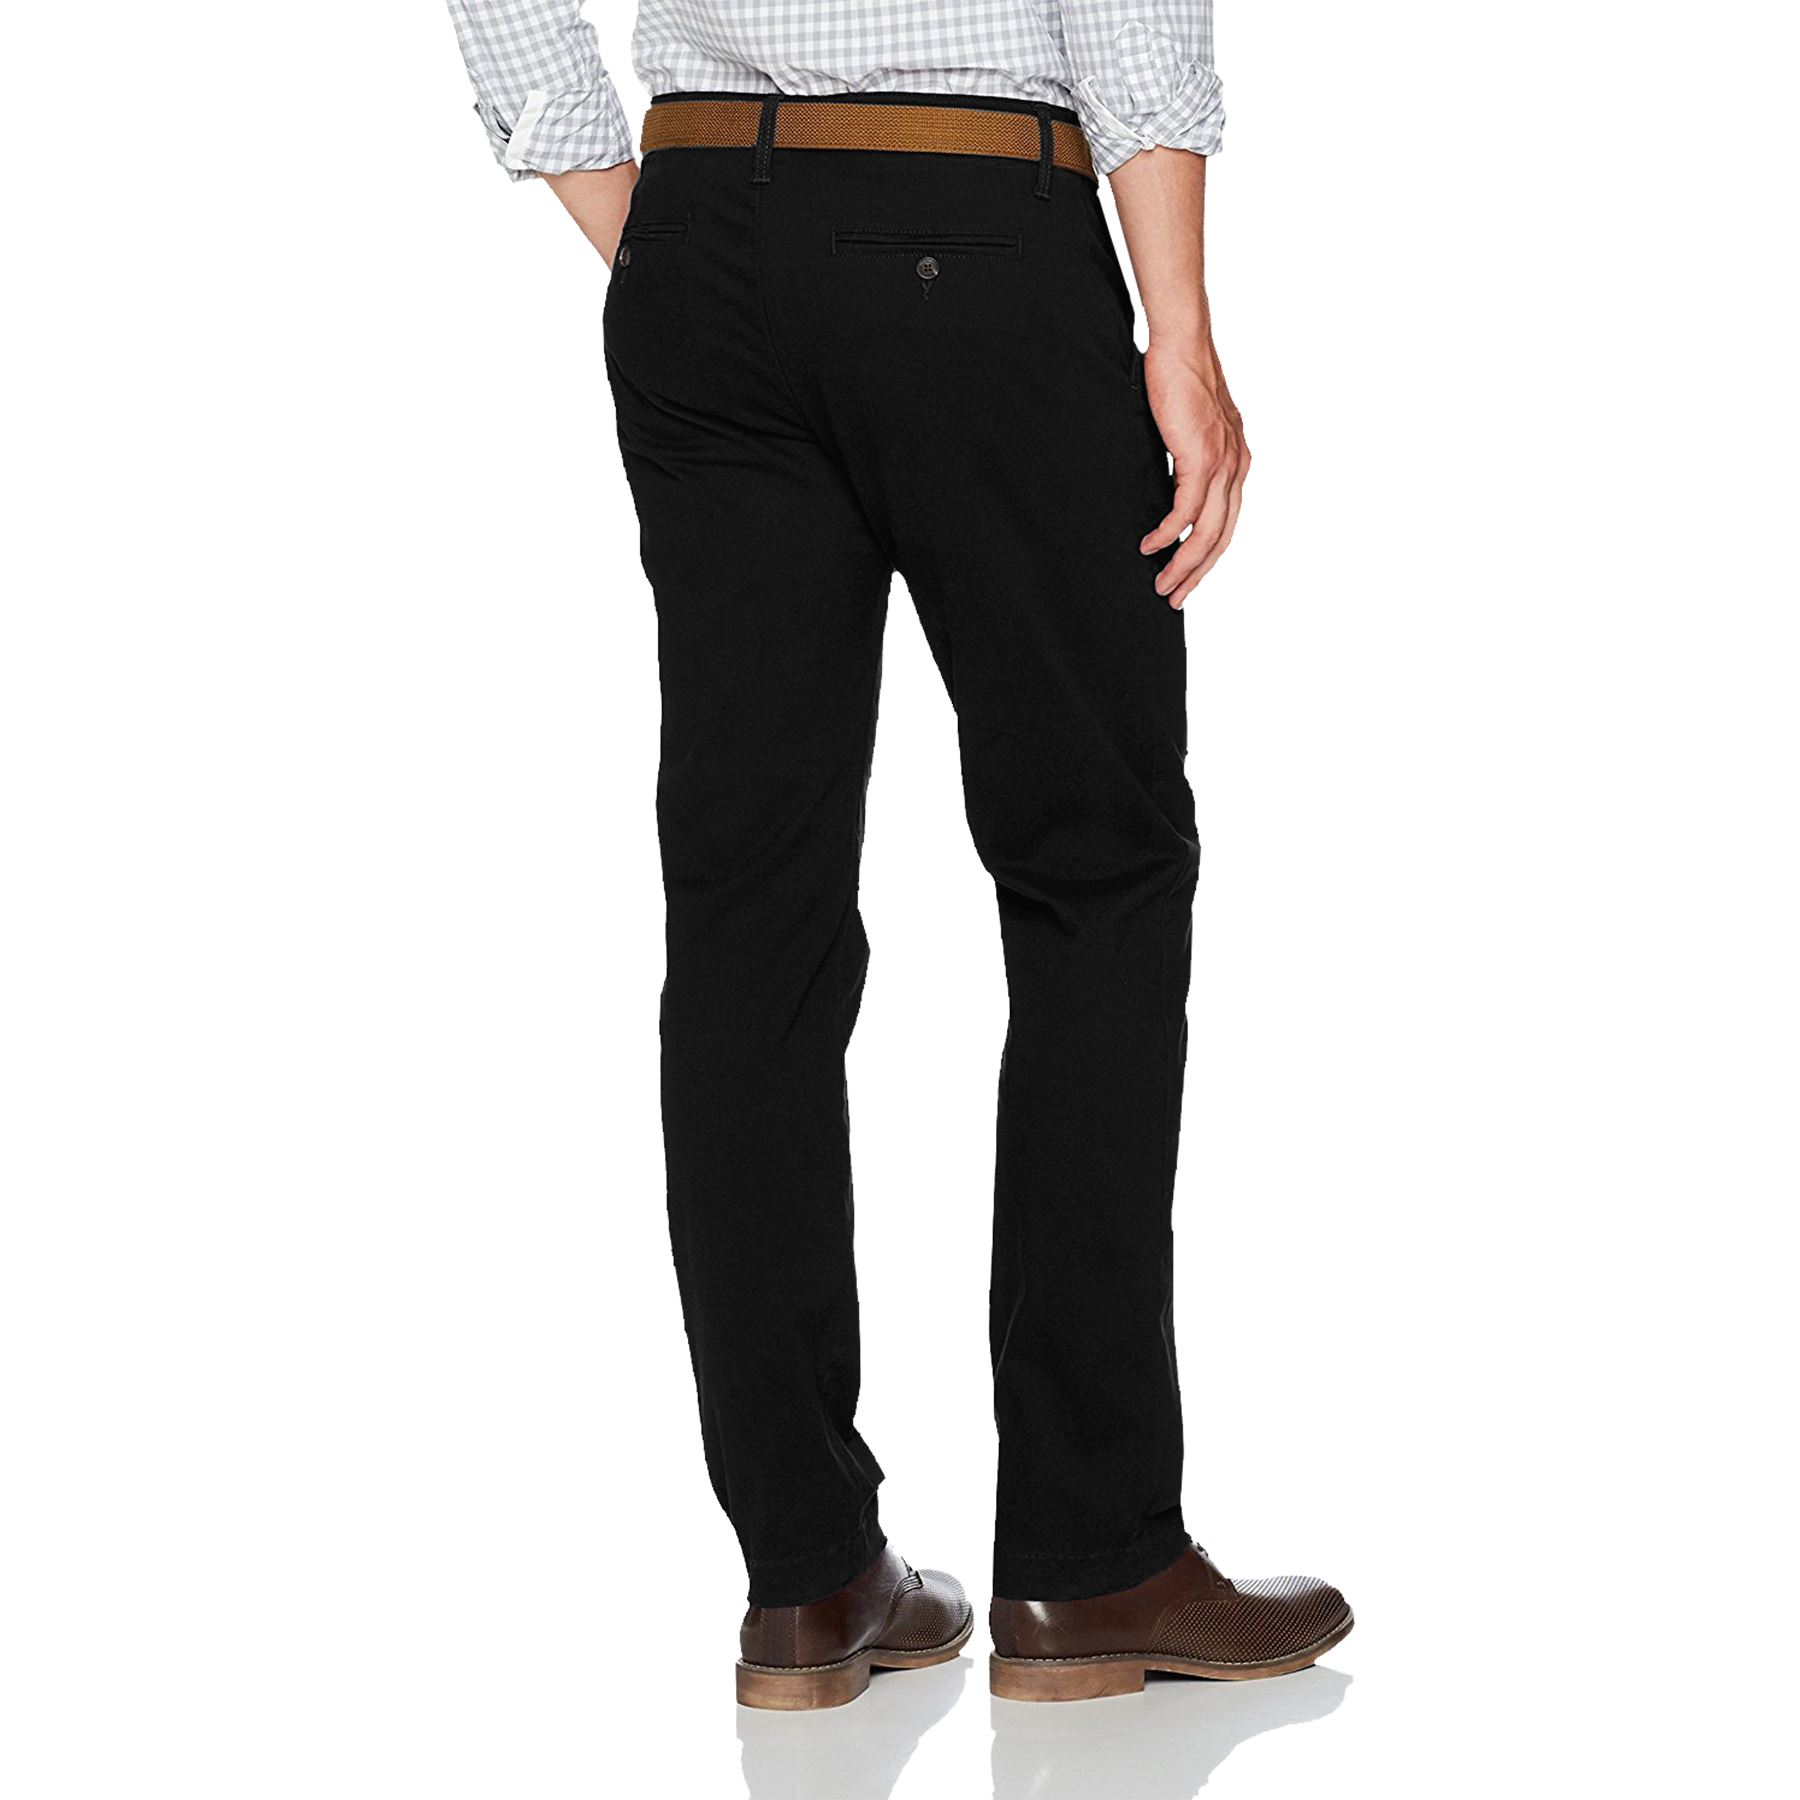 New-Mens-Ex-Store-Chino-Trousers-Regular-Fit-Straight-Cotton-Casual-Work-Pants thumbnail 5